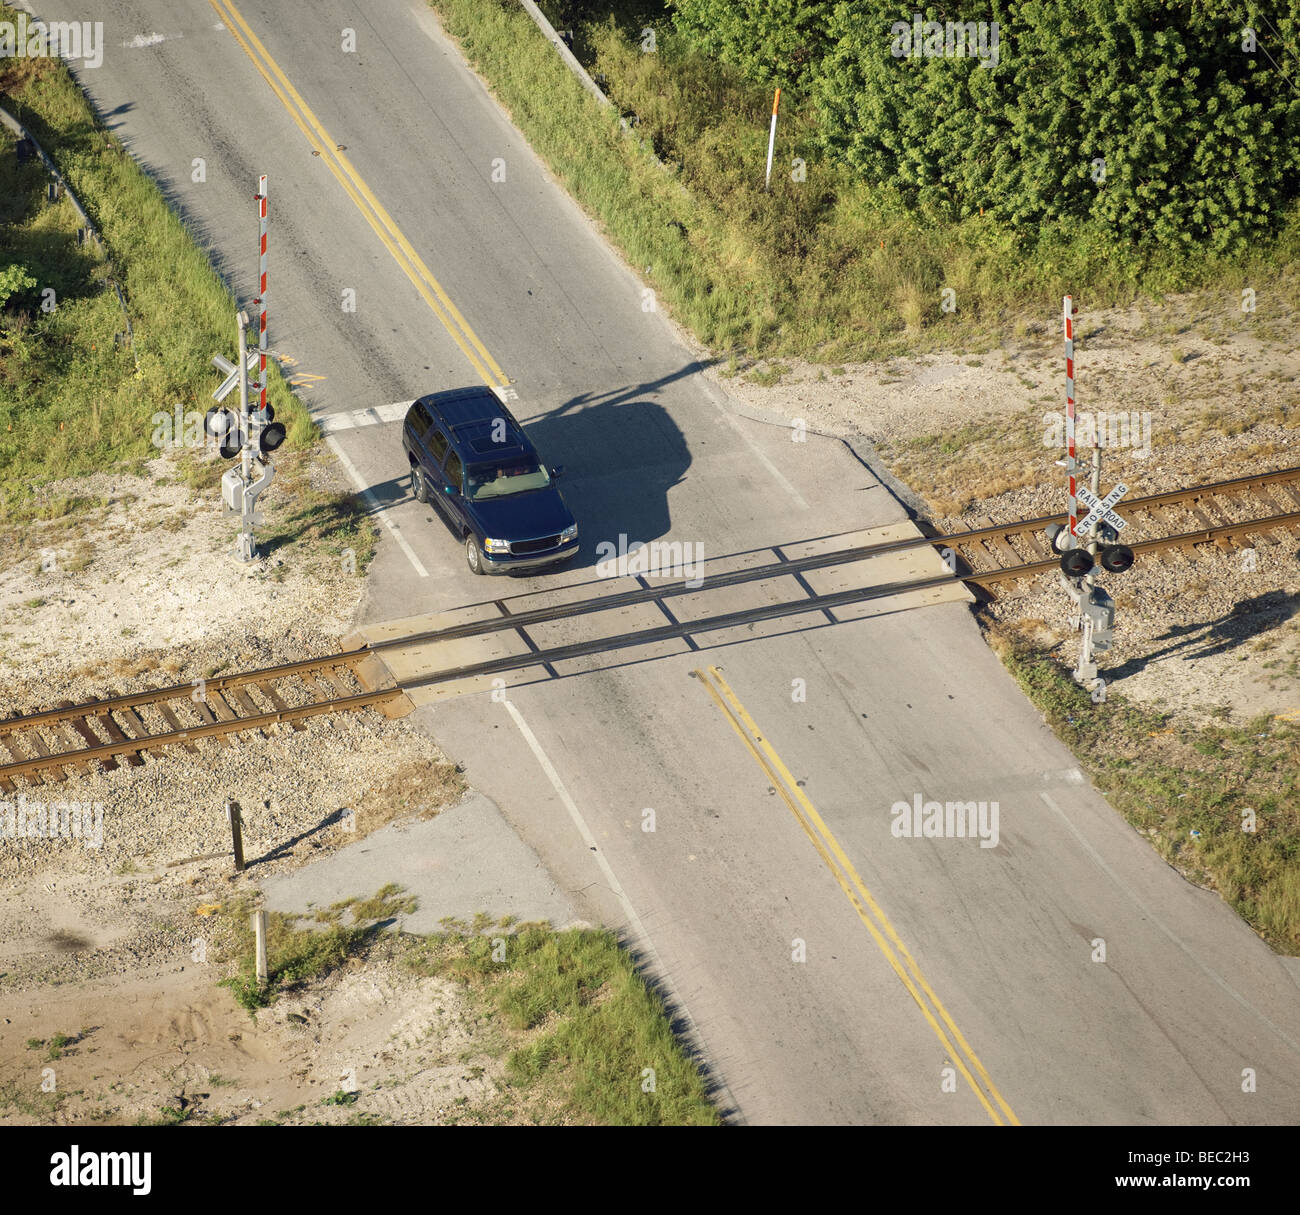 SUV going over a rural railroad crossing - Stock Image